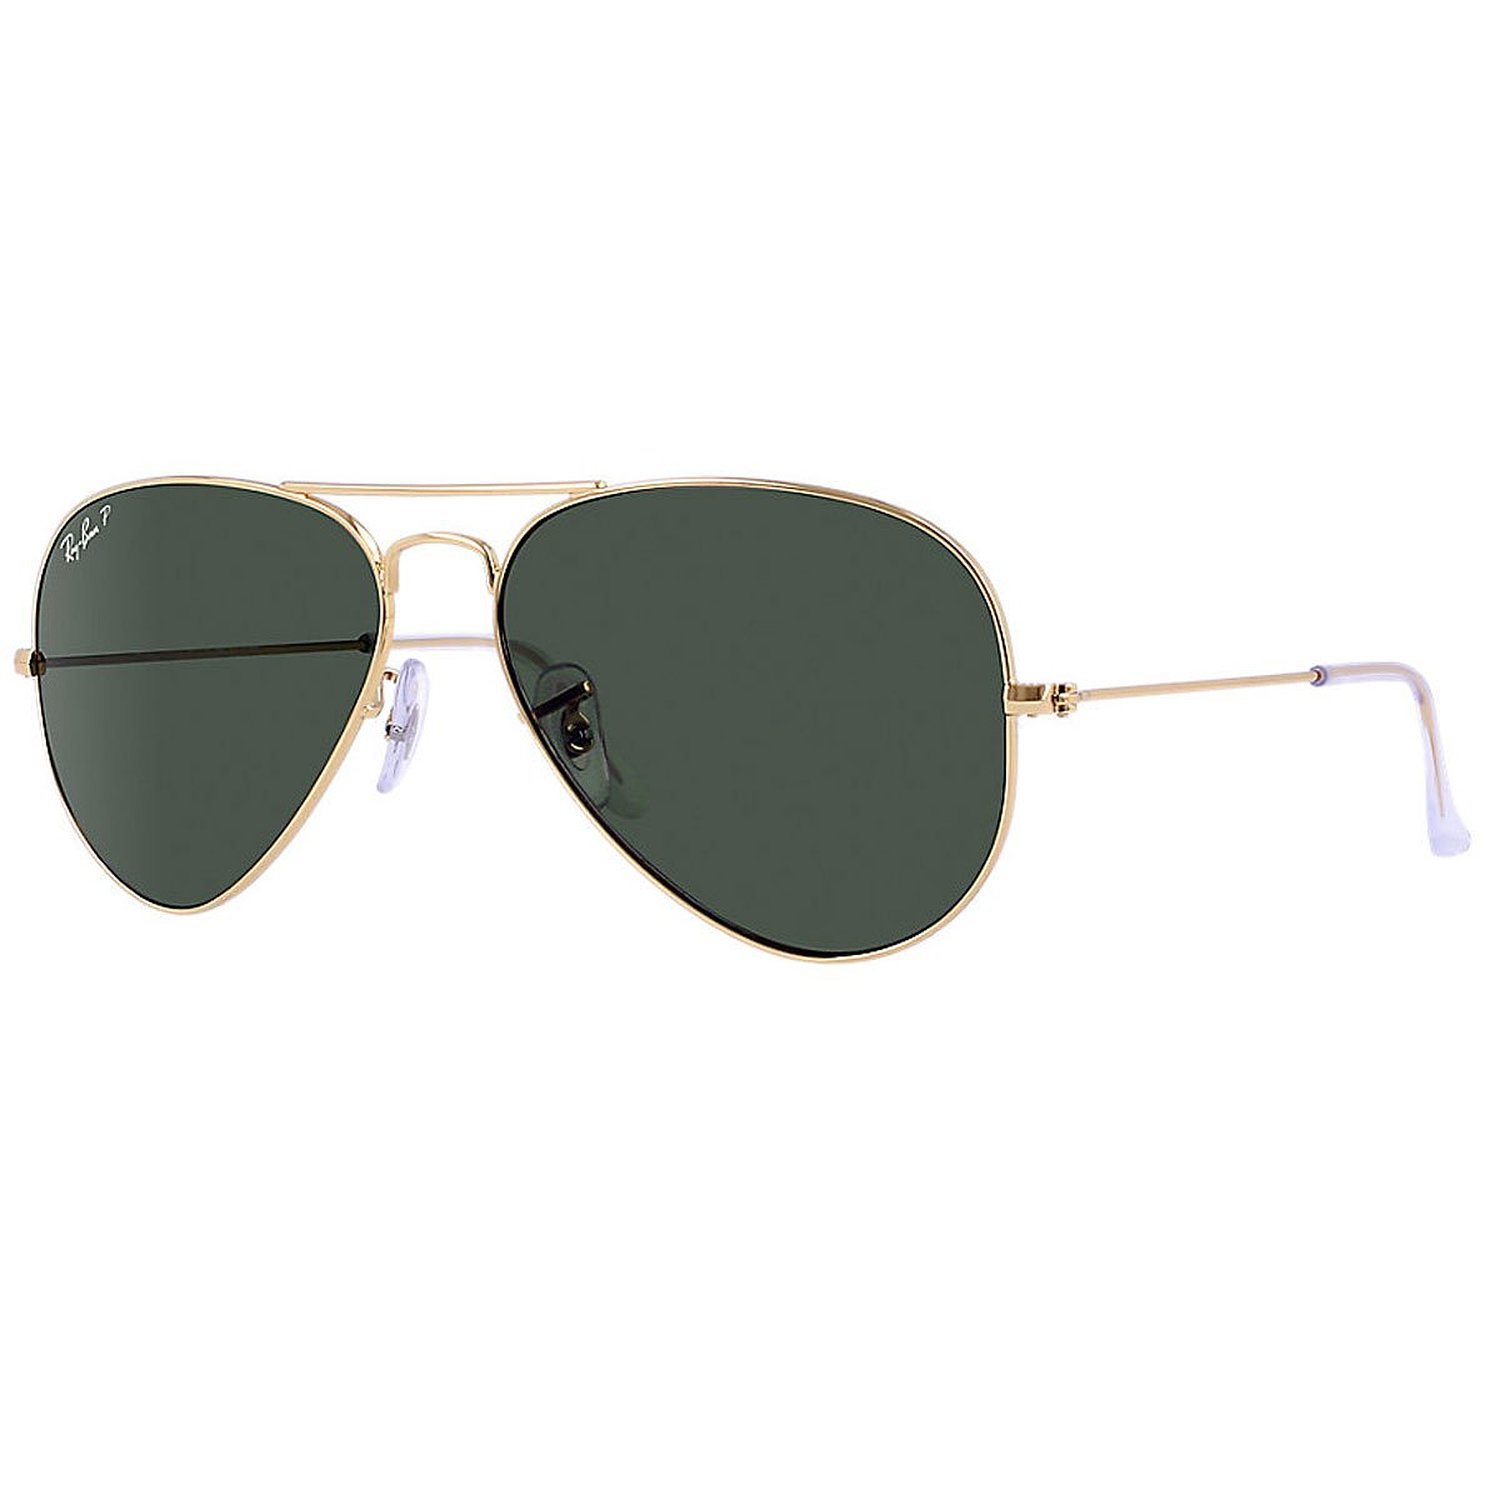 883d98cc24 Discount Ray Bans Polarized Aviators « Heritage Malta